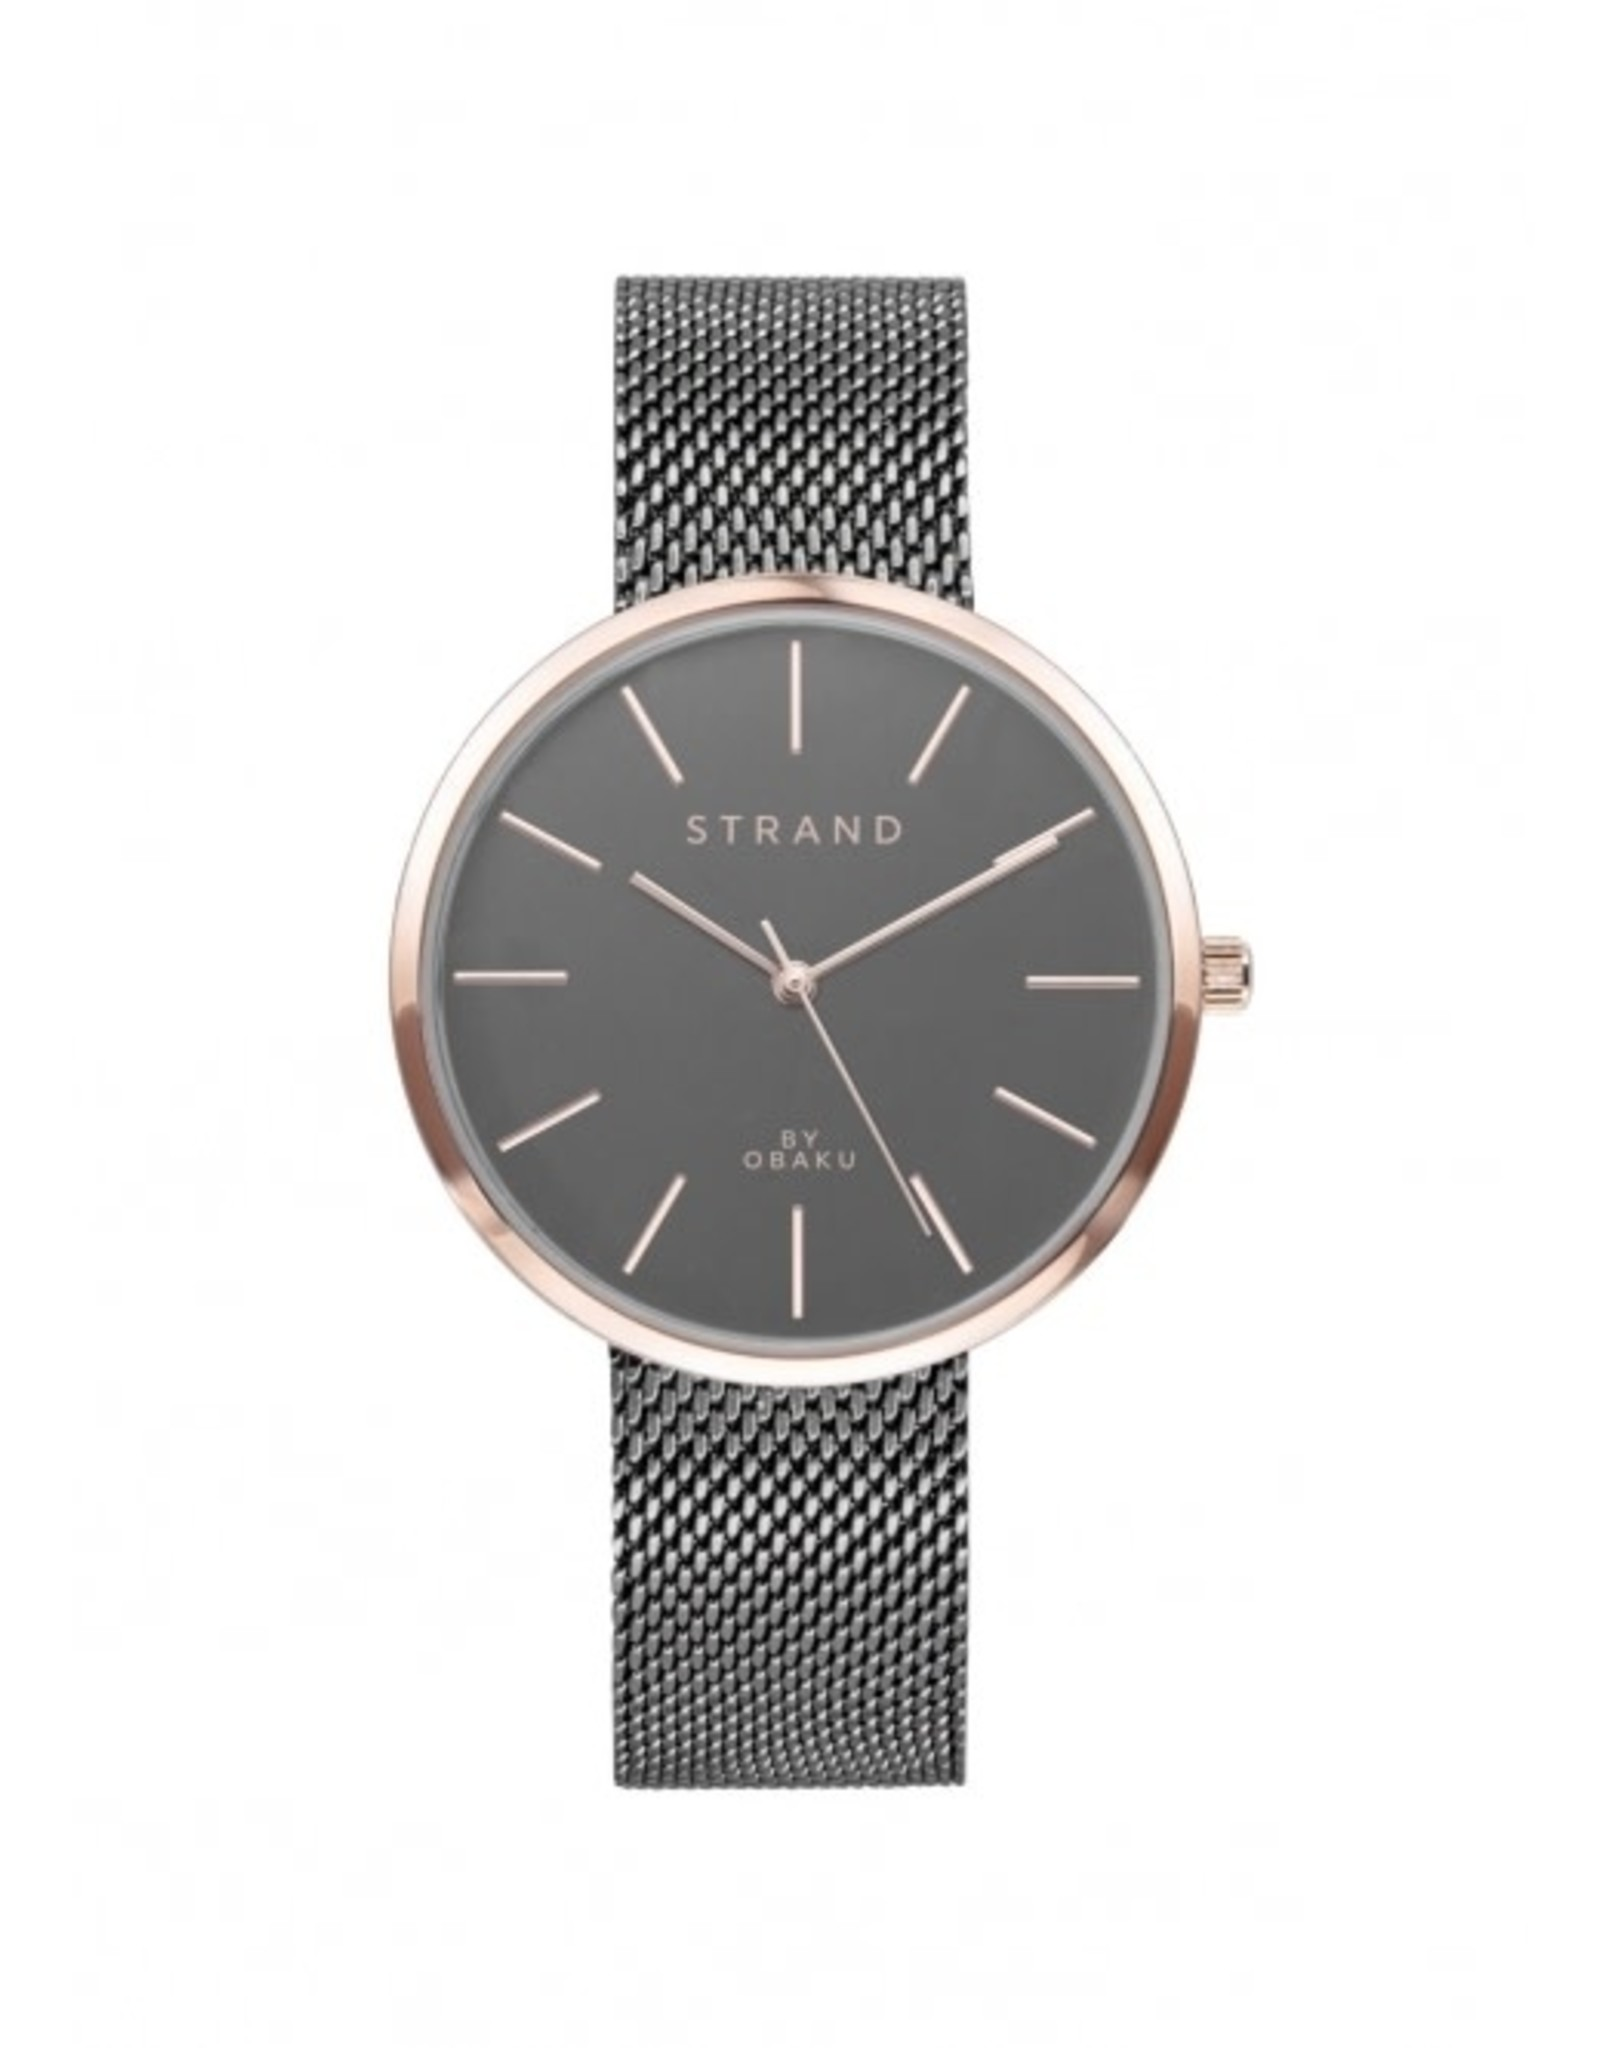 Strand by Obaku Montre Sunset - Gris